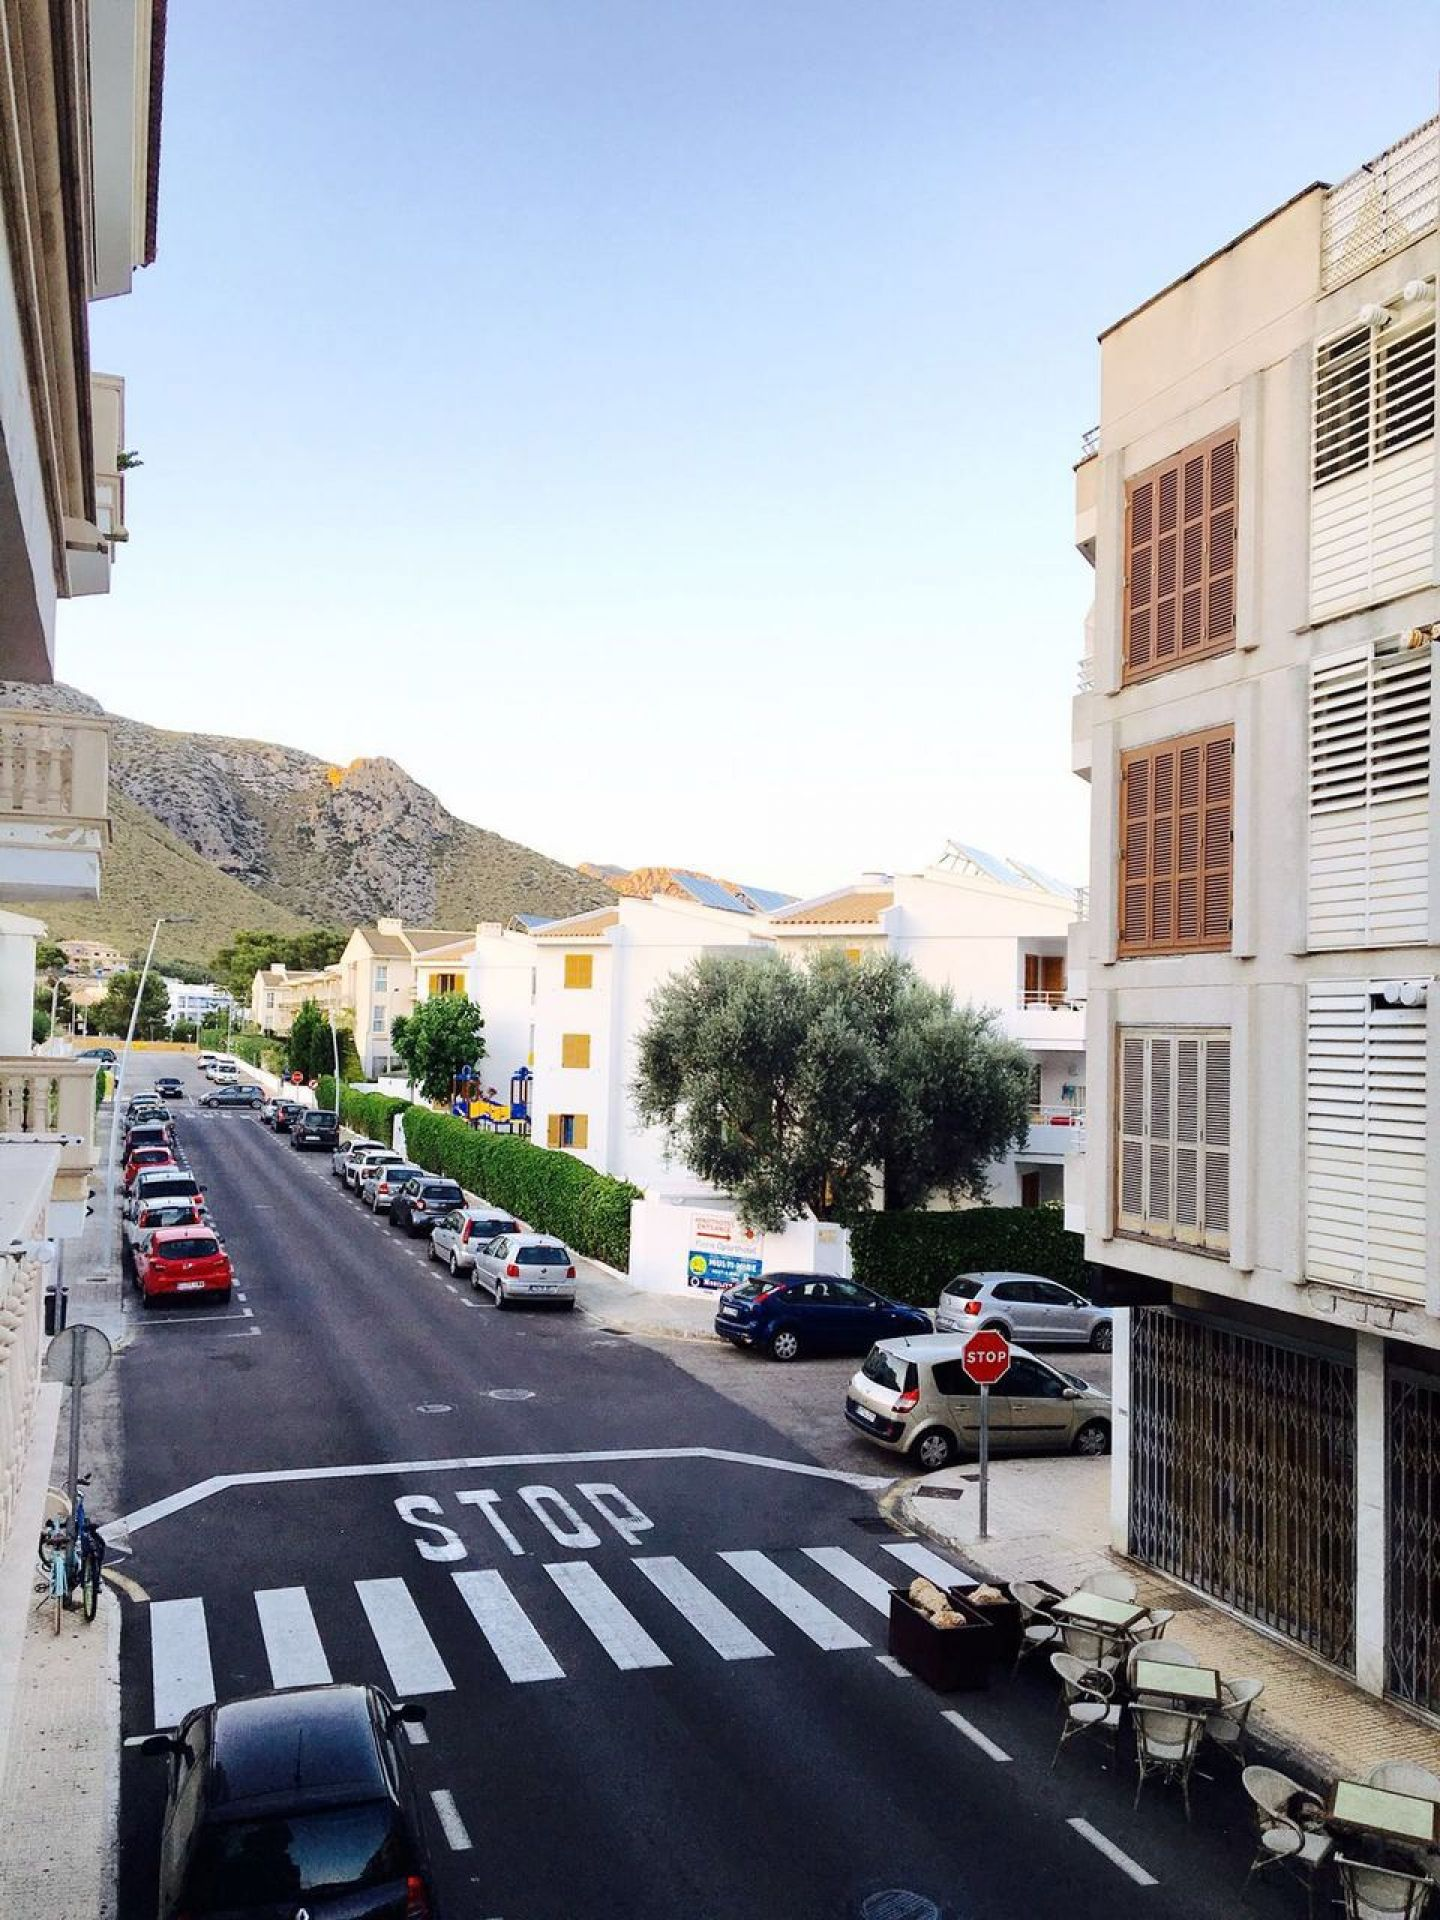 2 Bed Apartment for sale in PUERTO POLLENSA 12